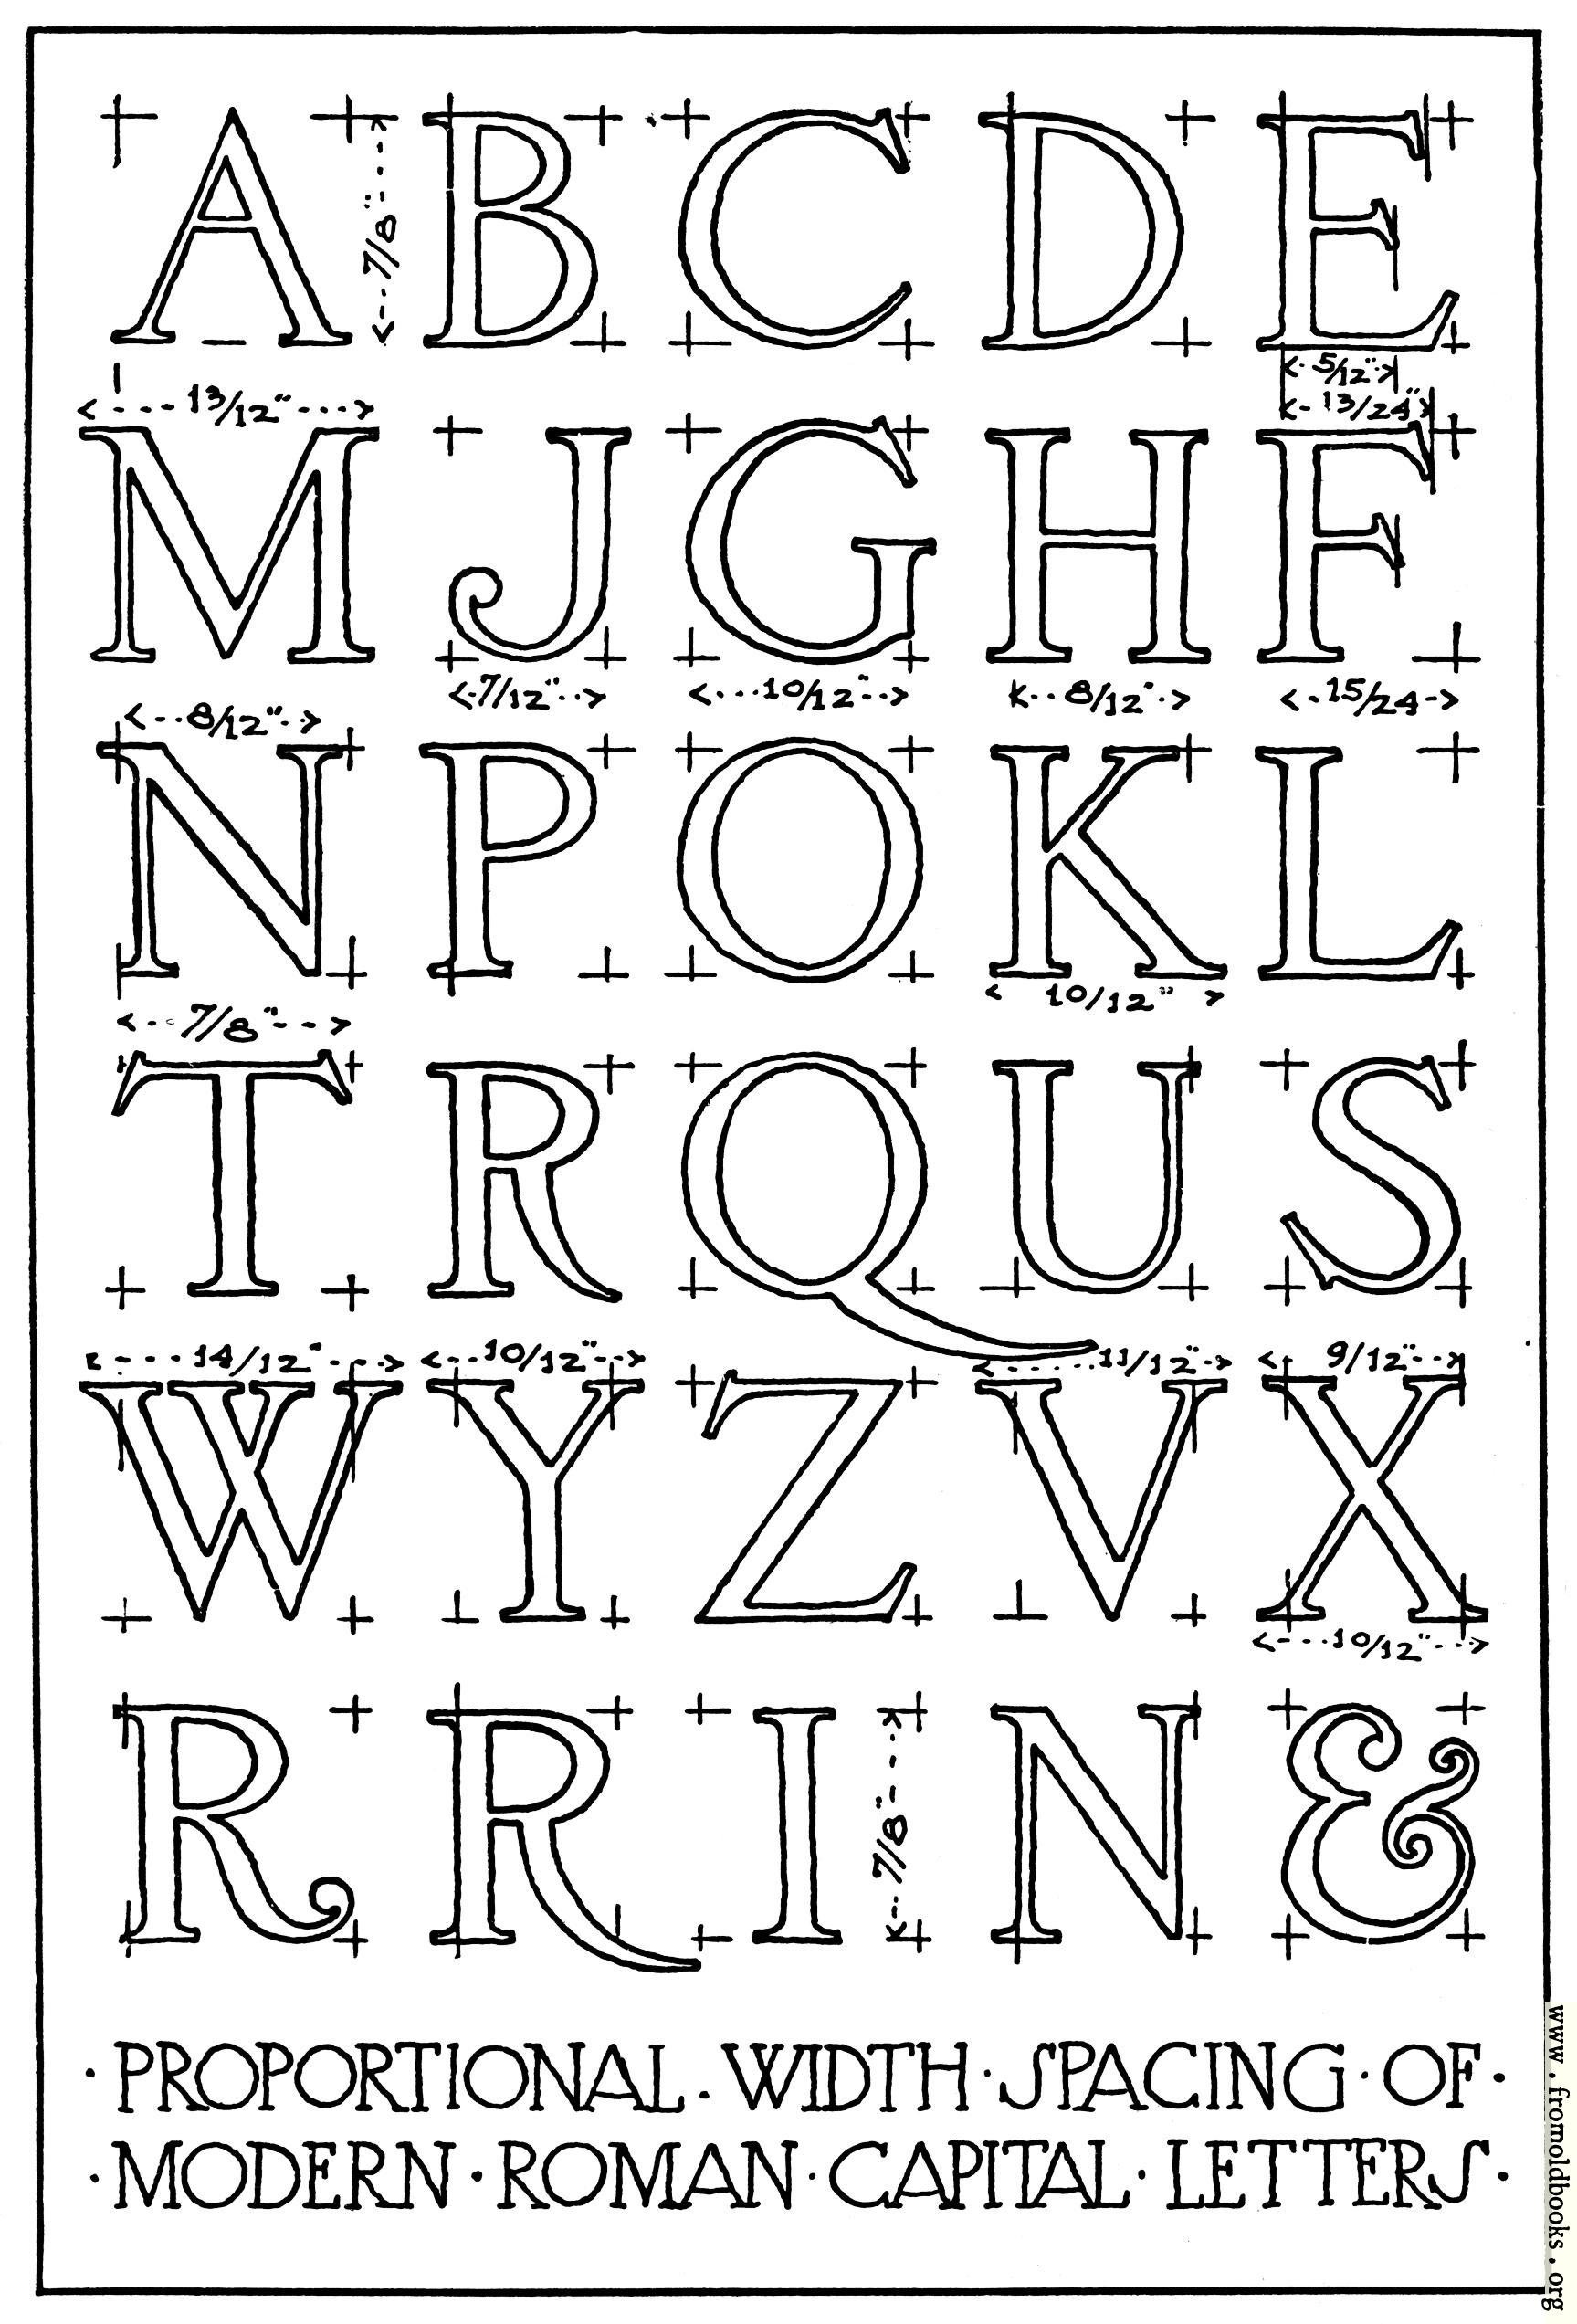 —width proportions of modern roman capitals